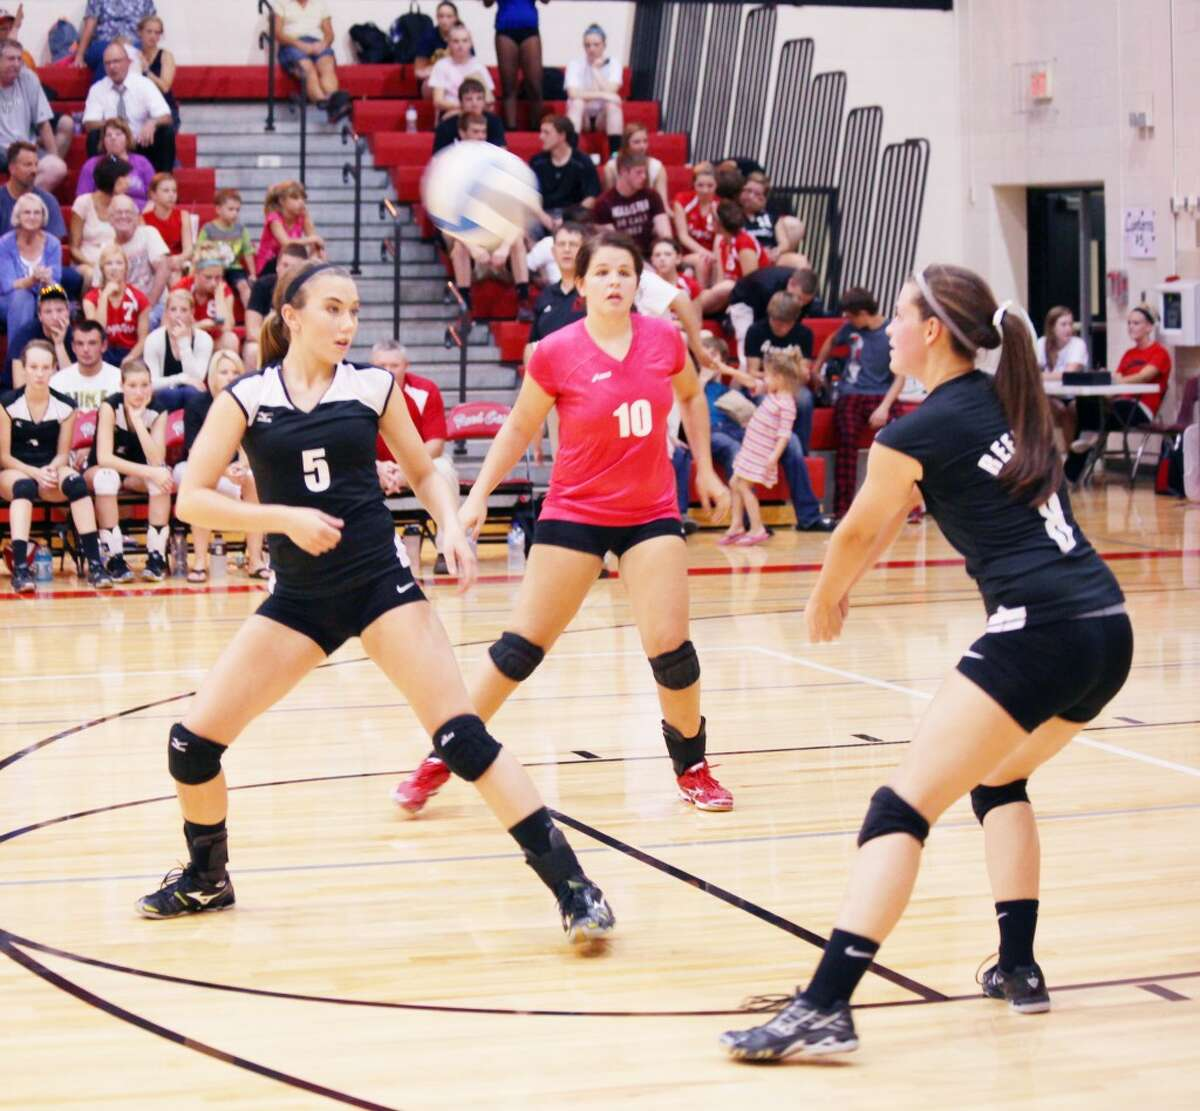 Reed City's Kayla Davis (riight) hits a shot while Karah Hensel (10) and Jacolyn Mullins prepare to react in last week's match against Morley Stanwood. (Herald Review photo/Greg Buckner)